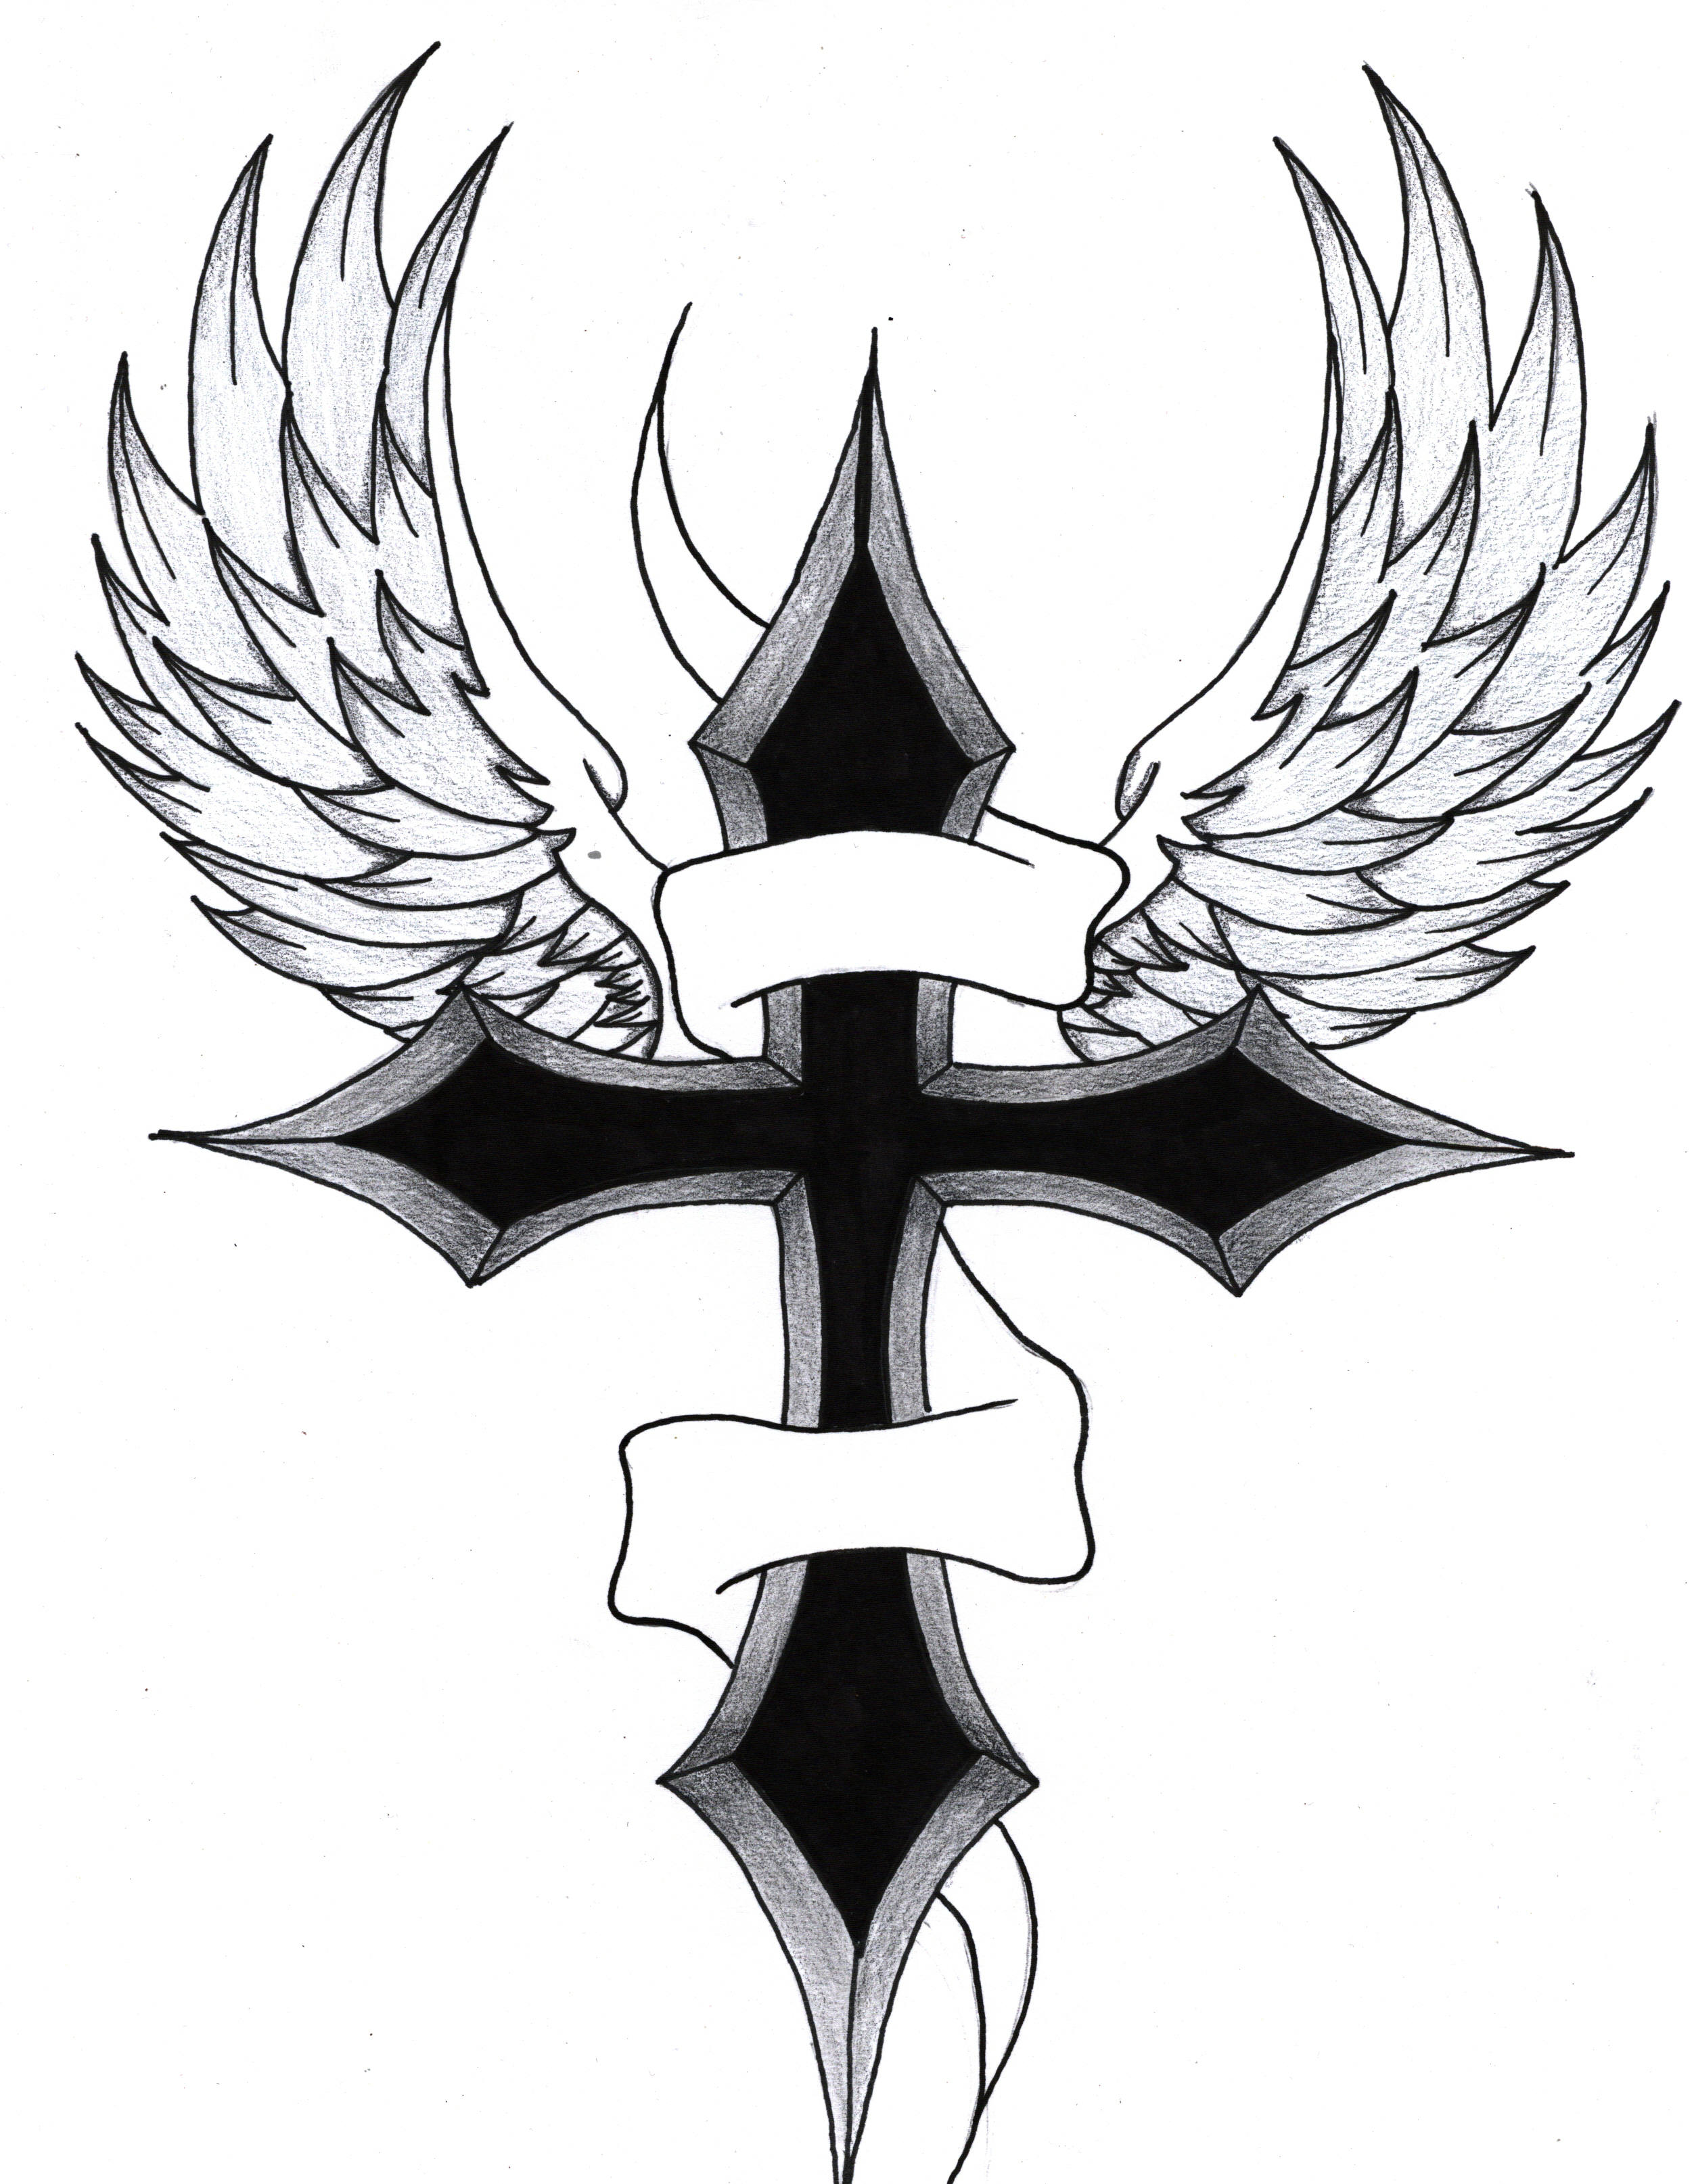 Drawings Of Crosses With Wings - ClipArt Best